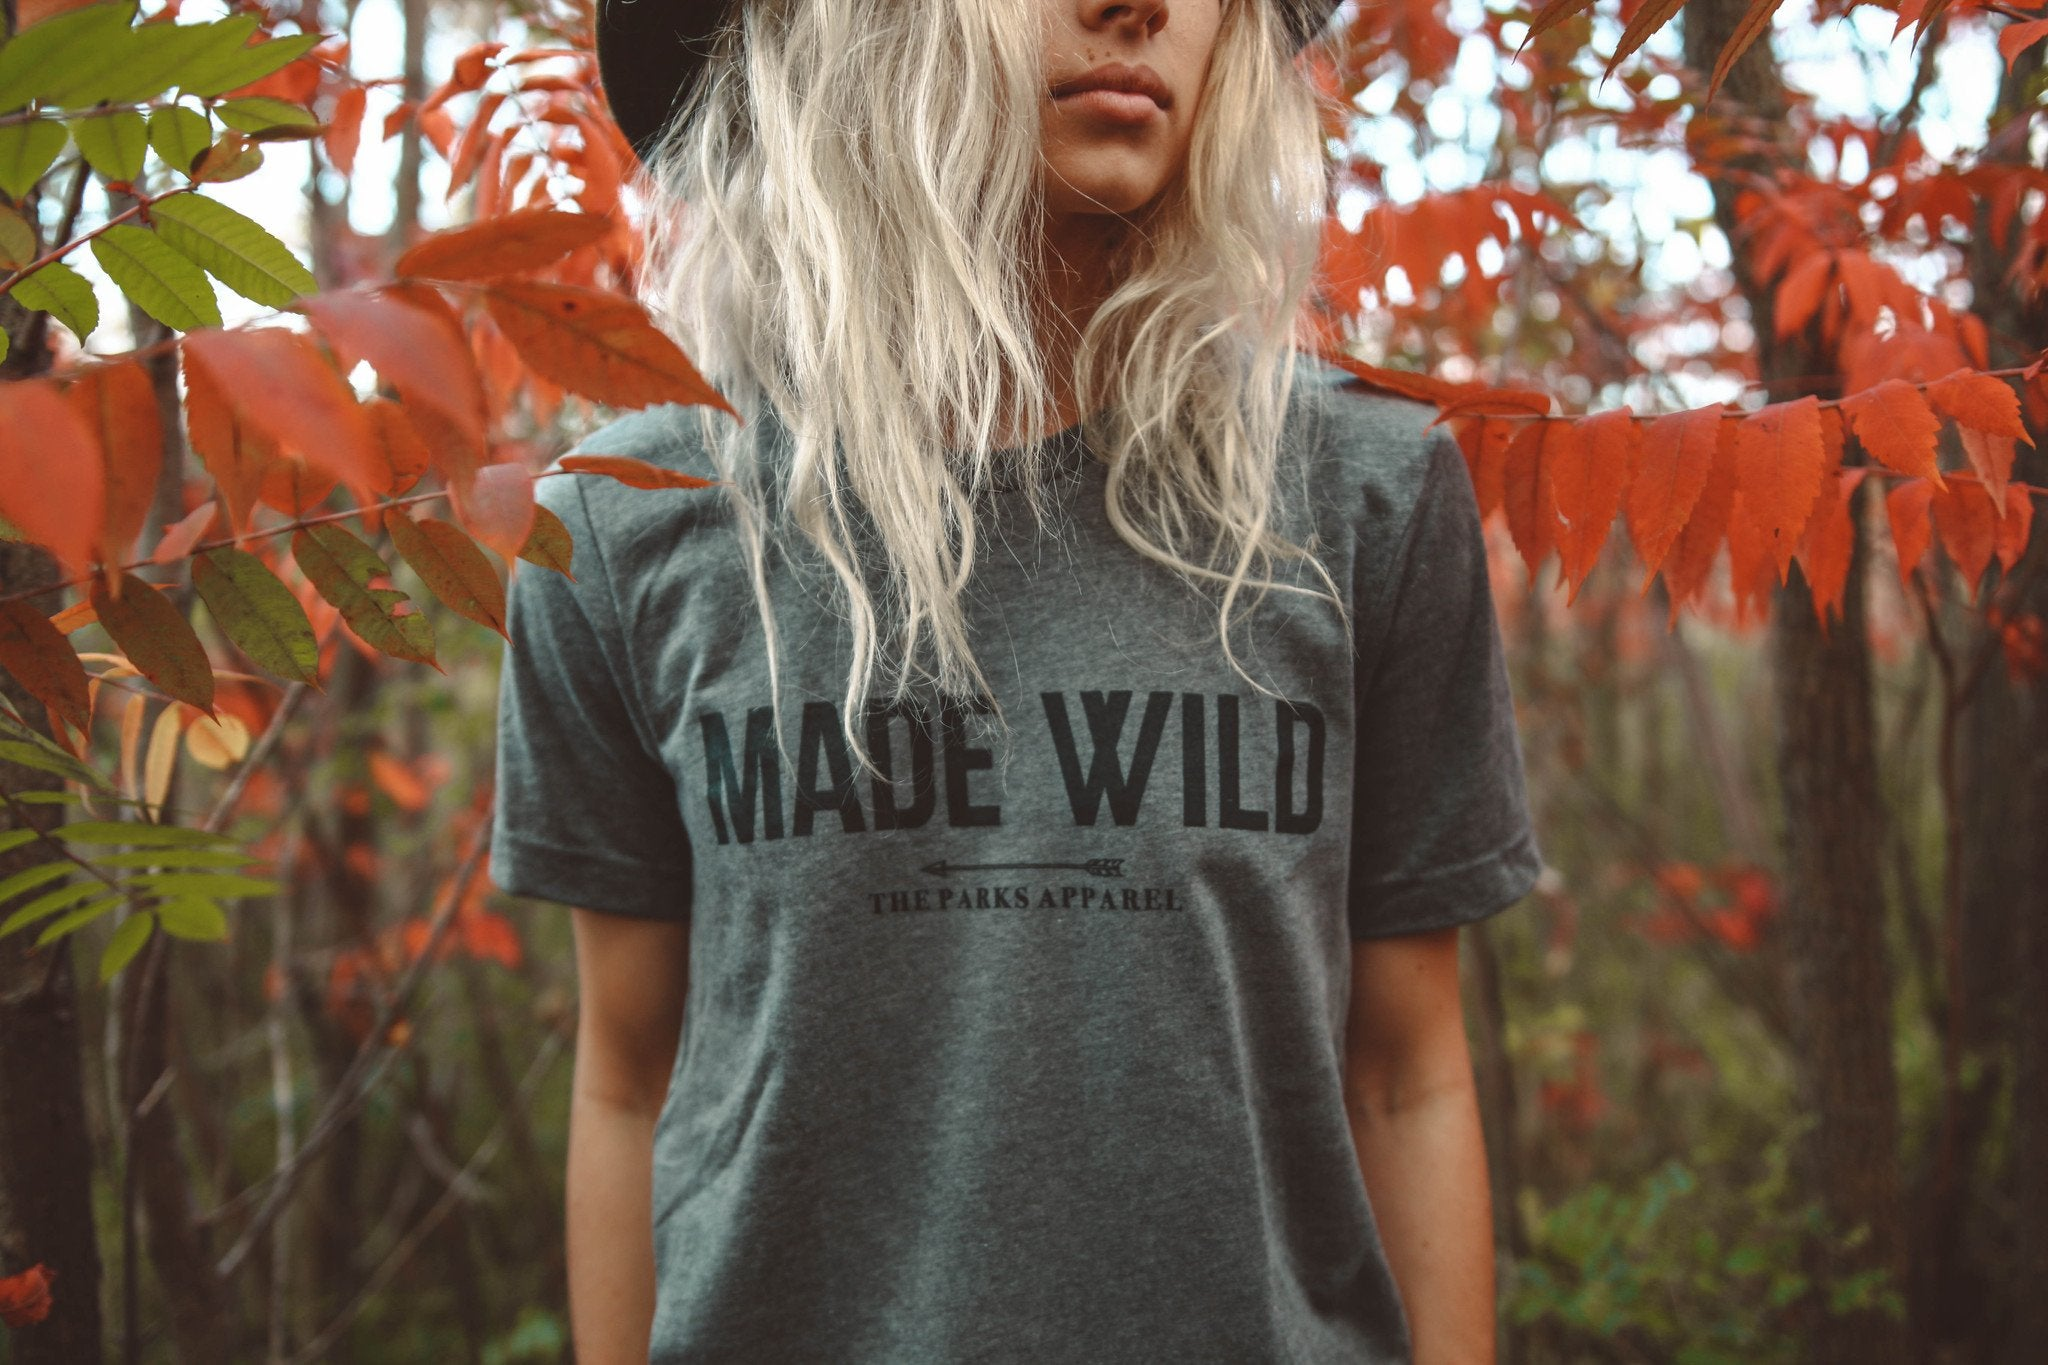 The Parks Made Wild Tee - The Parks Apparel